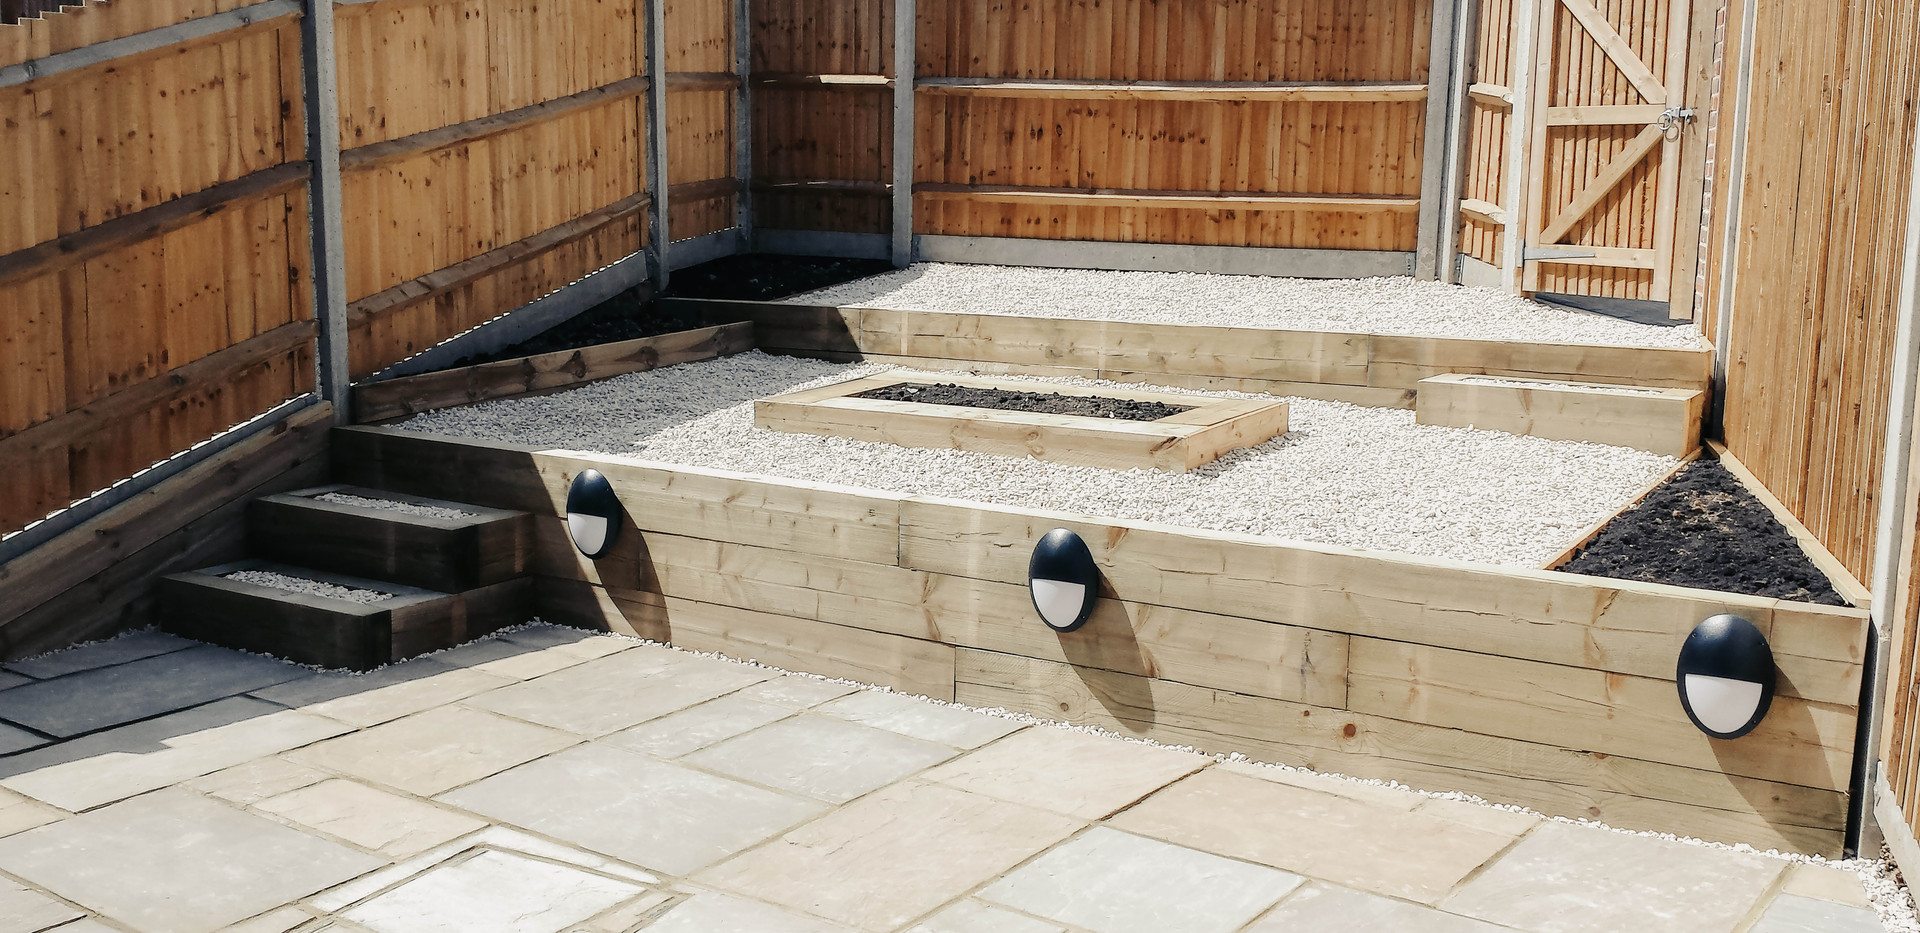 landscaped small rear garden with stepped feature, paved patio, external lights, gravel, central raised bed and wooden fence panels